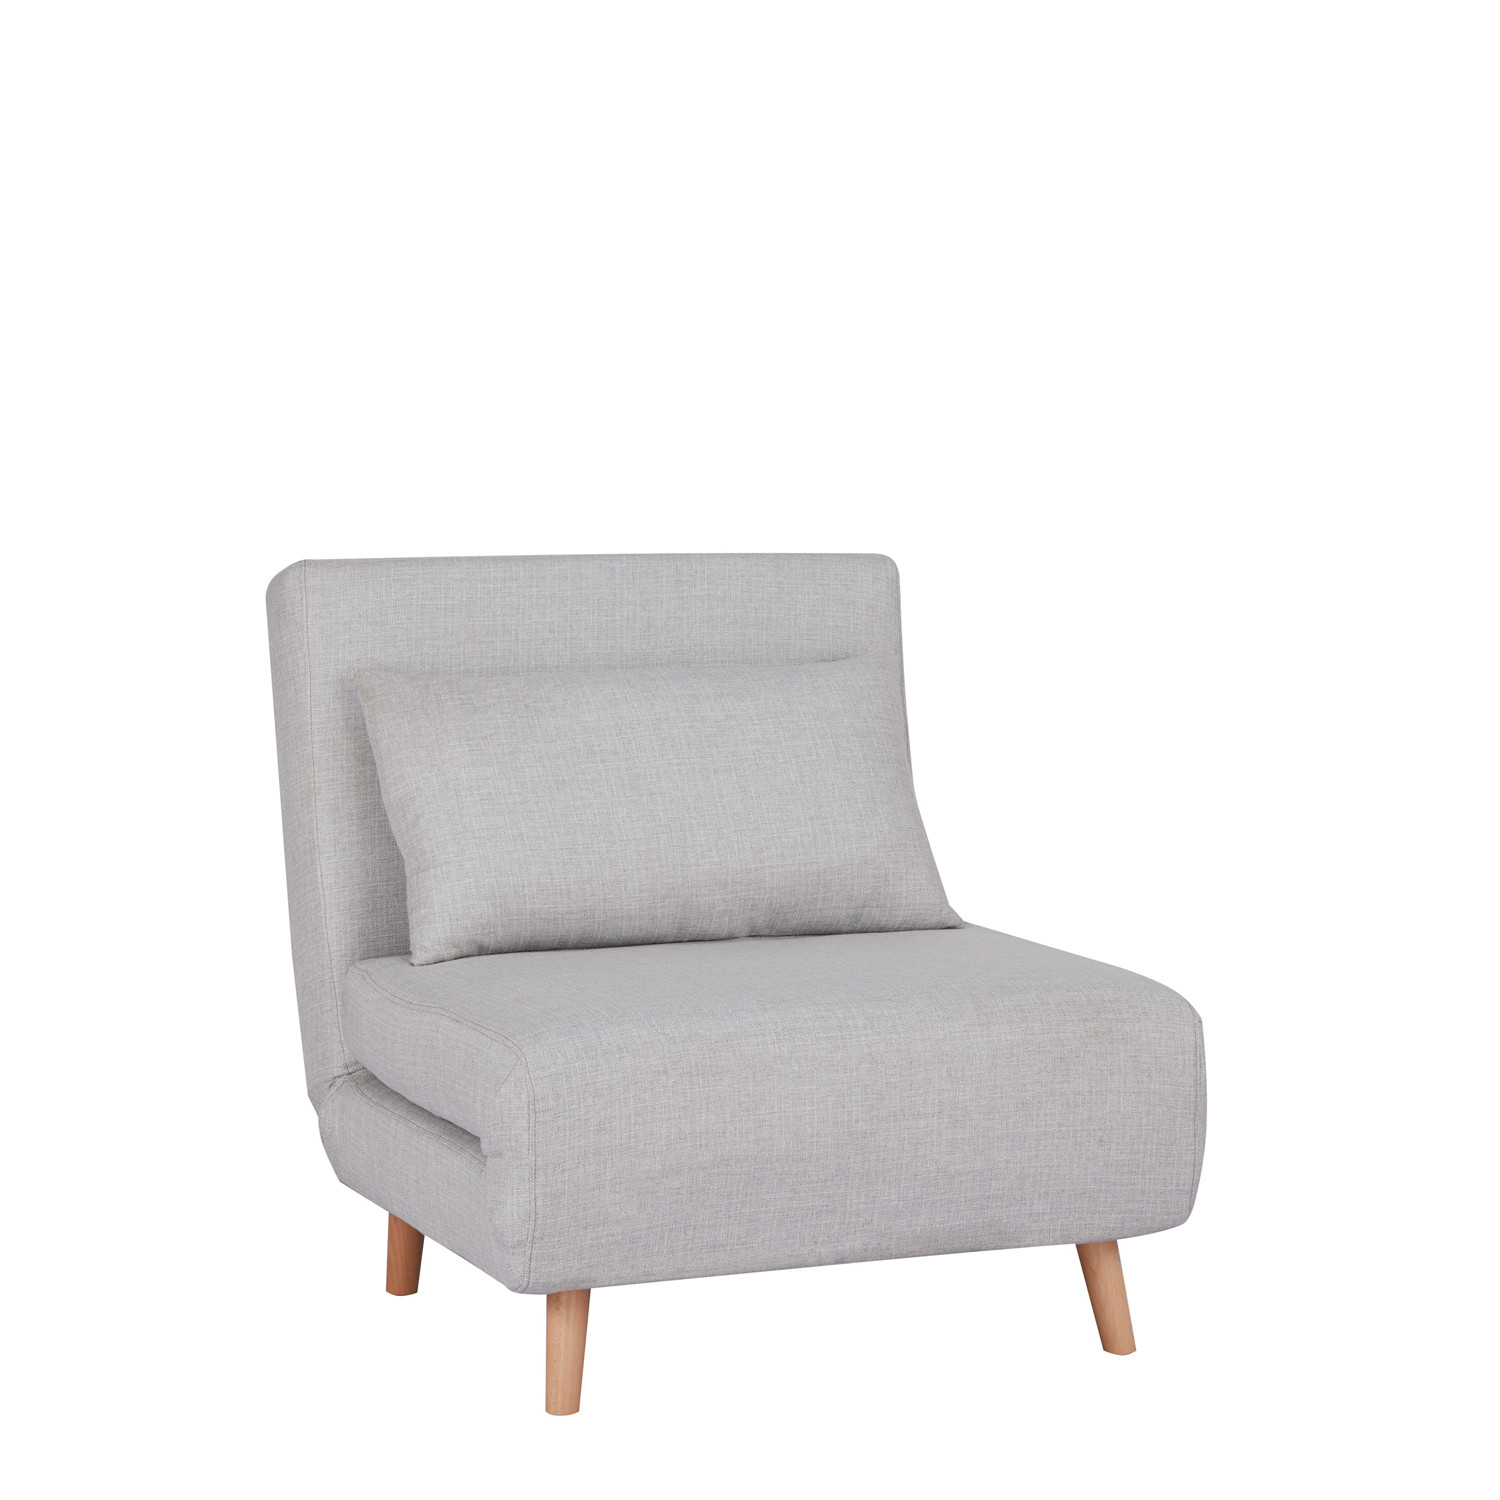 - Elen Single Sofa Bed In Fabric - SKLUM